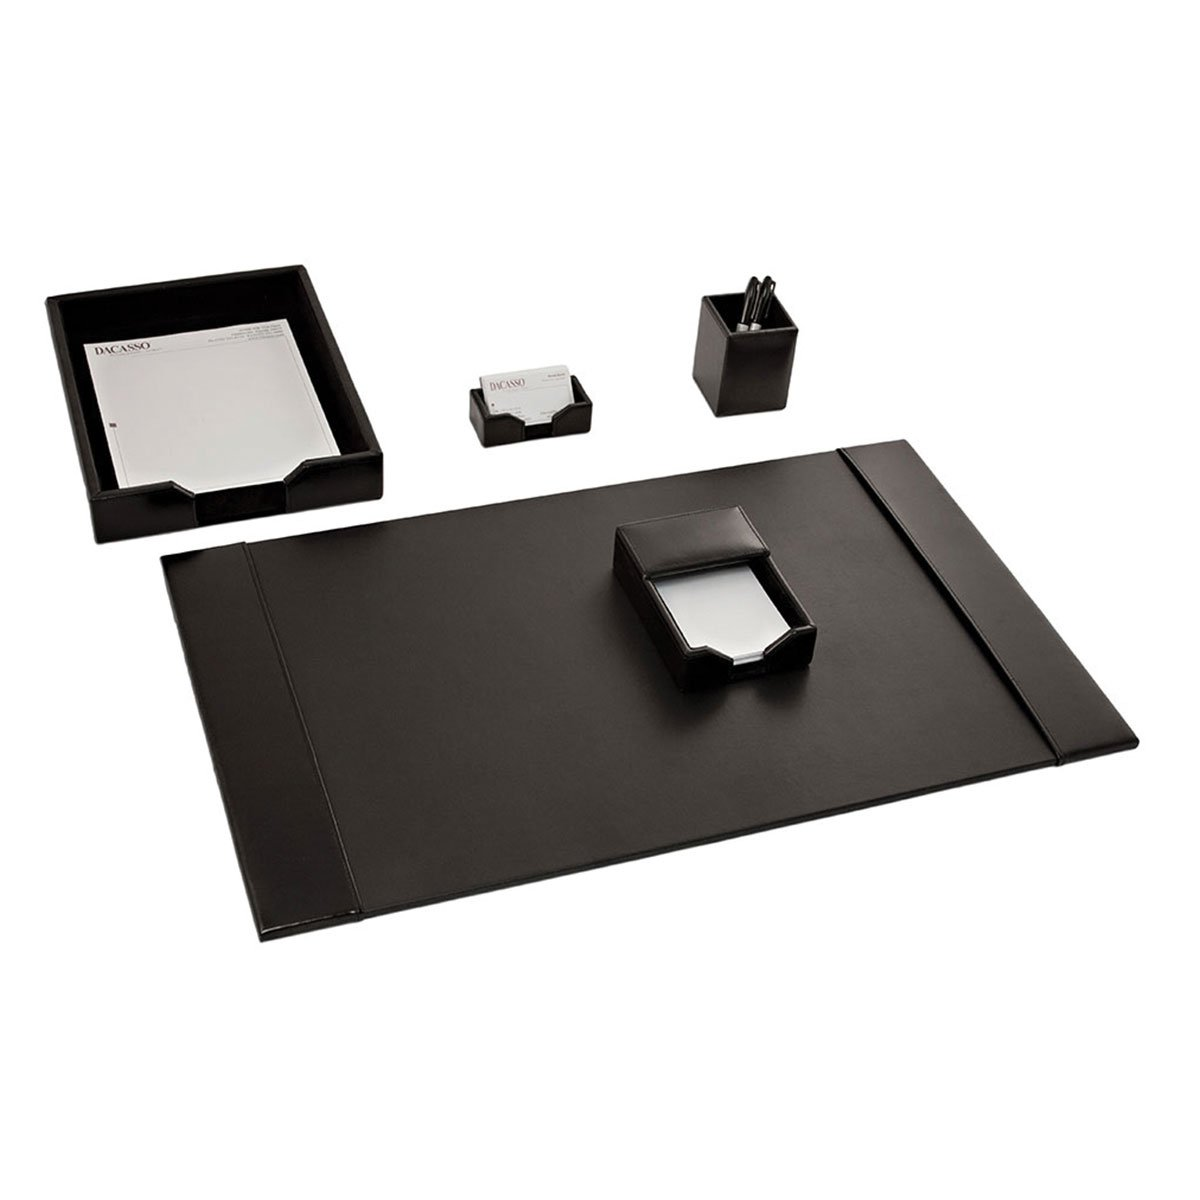 Dacasso Black Bonded Leather Desk Set, 5-Piece